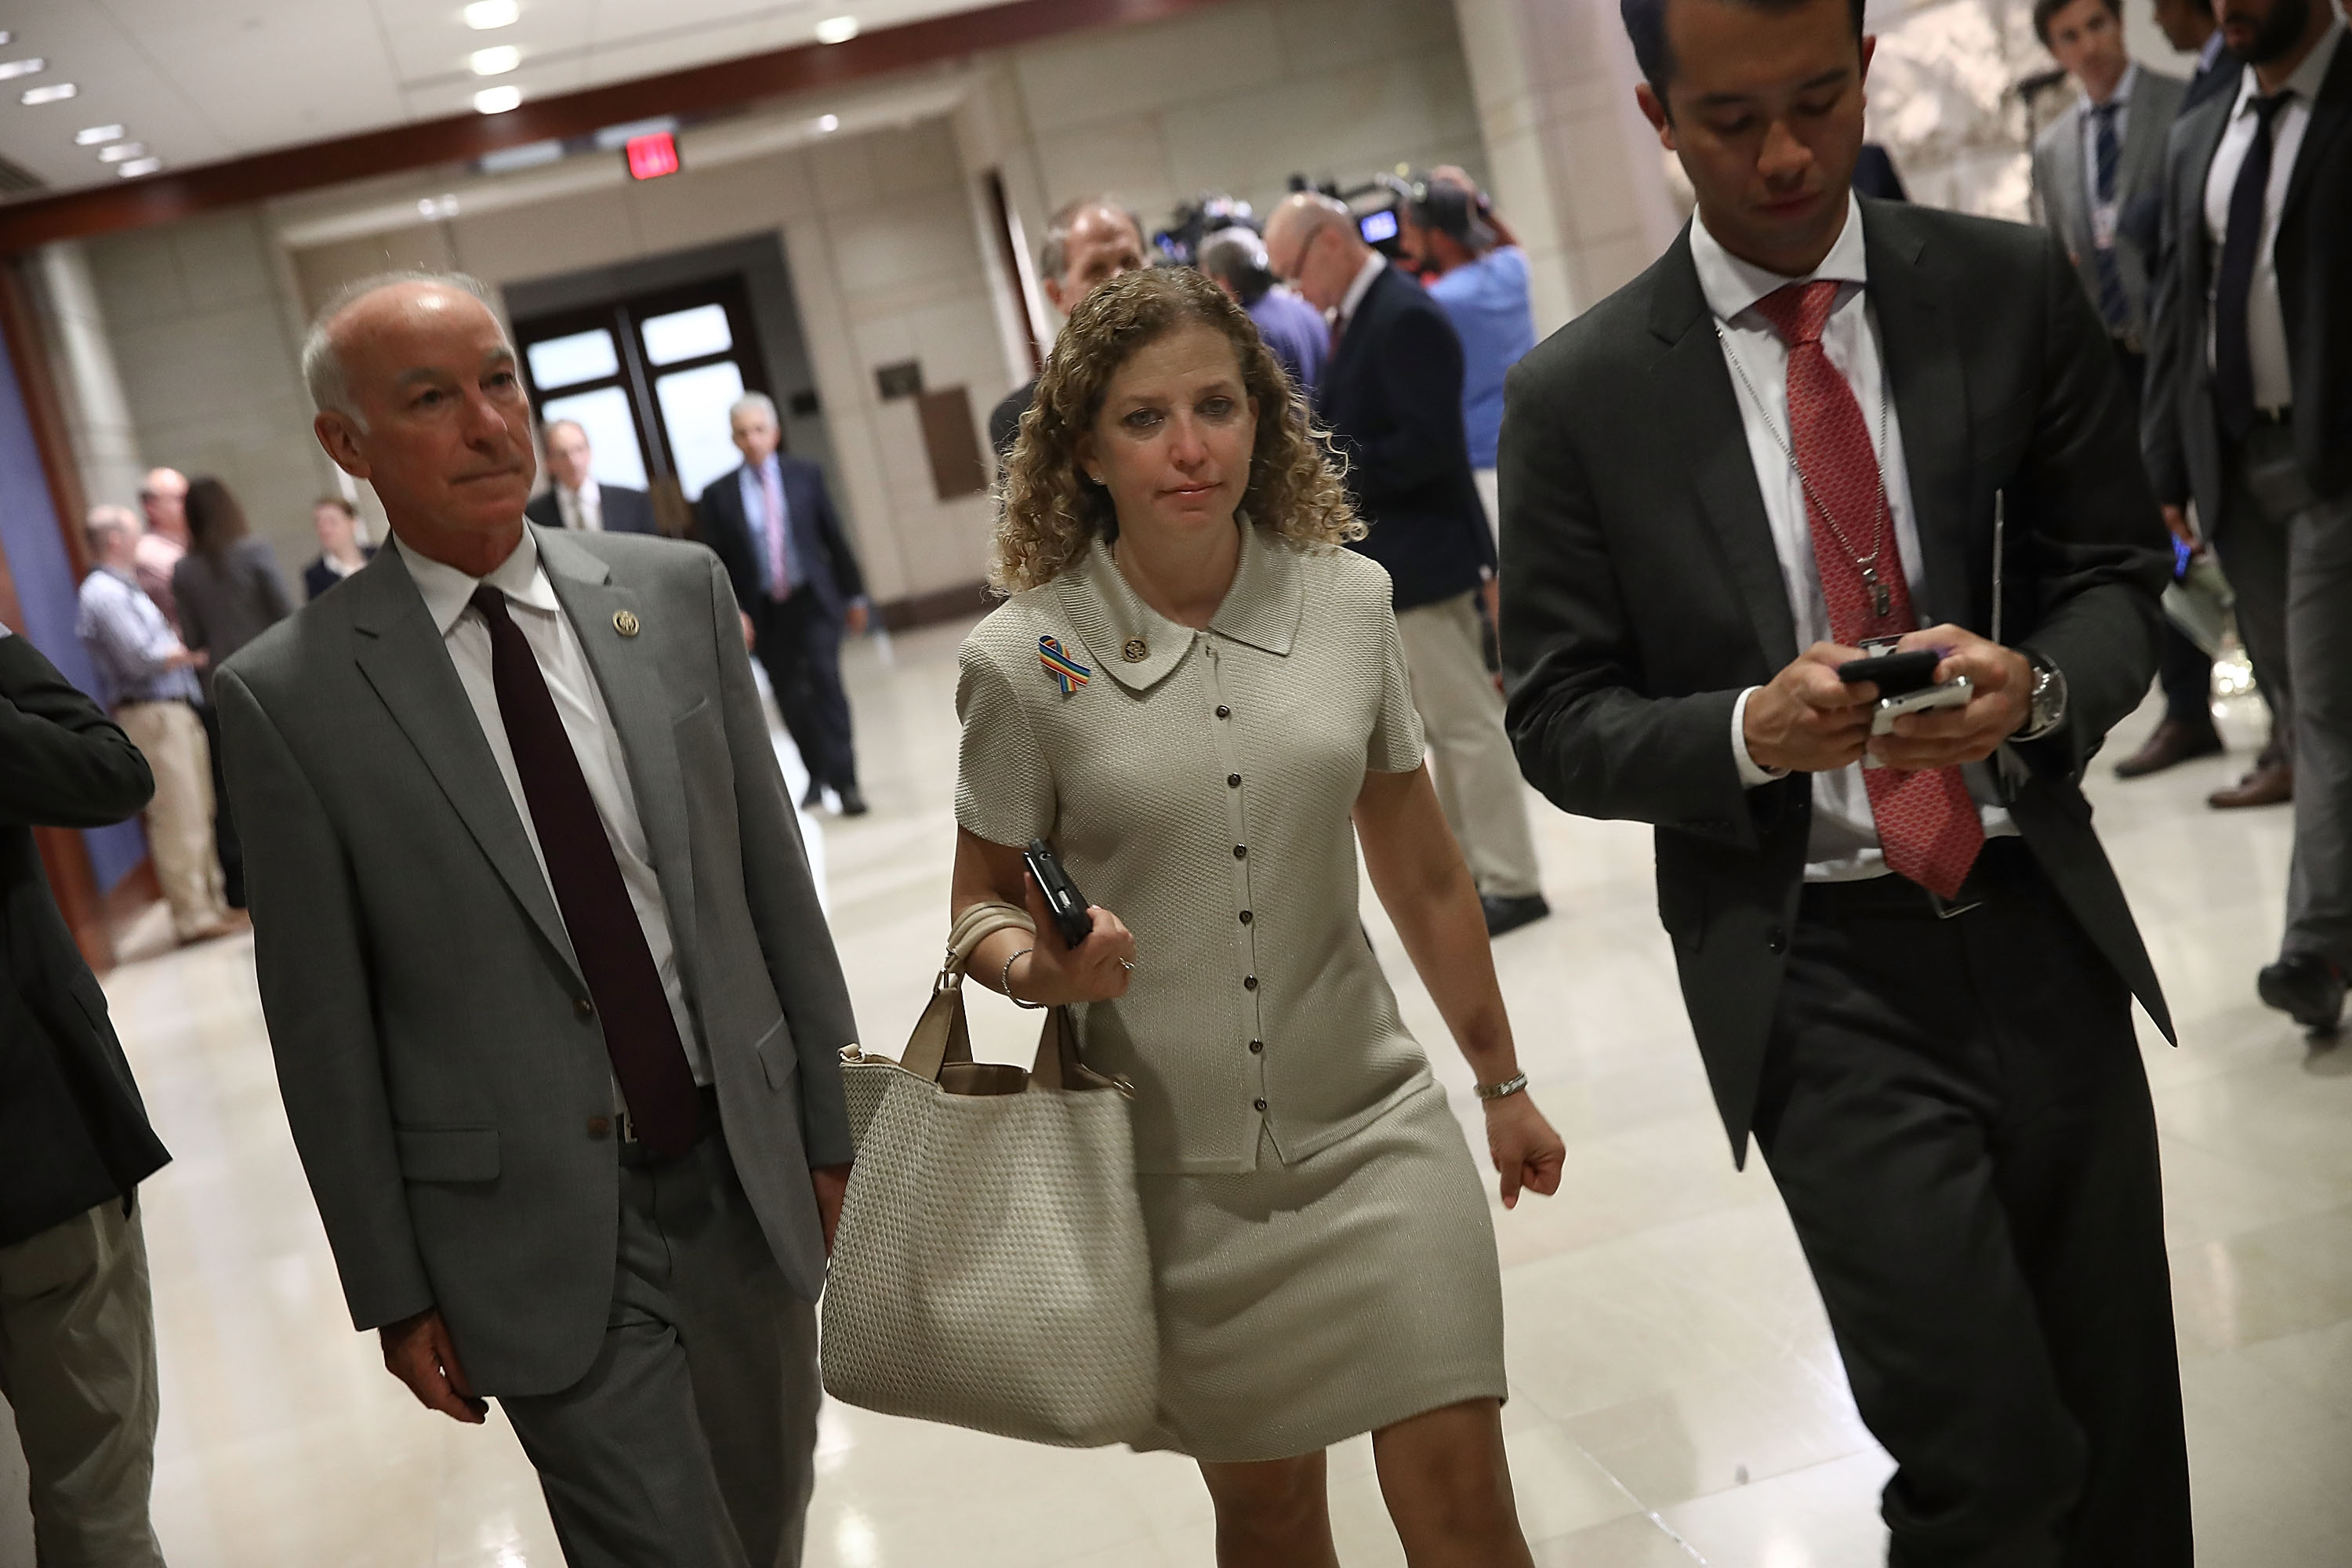 Democratic National Committee Chairwoman Rep. Debbie Wasserman Schultz (C) (D-FL) arrives for a closed briefing for members of the House of Representatives at the U.S. Capitol June 14, 2016 in Washington, DC. Members of the House received a briefing on the latest information surrounding the recent attack in Orlando, Florida.